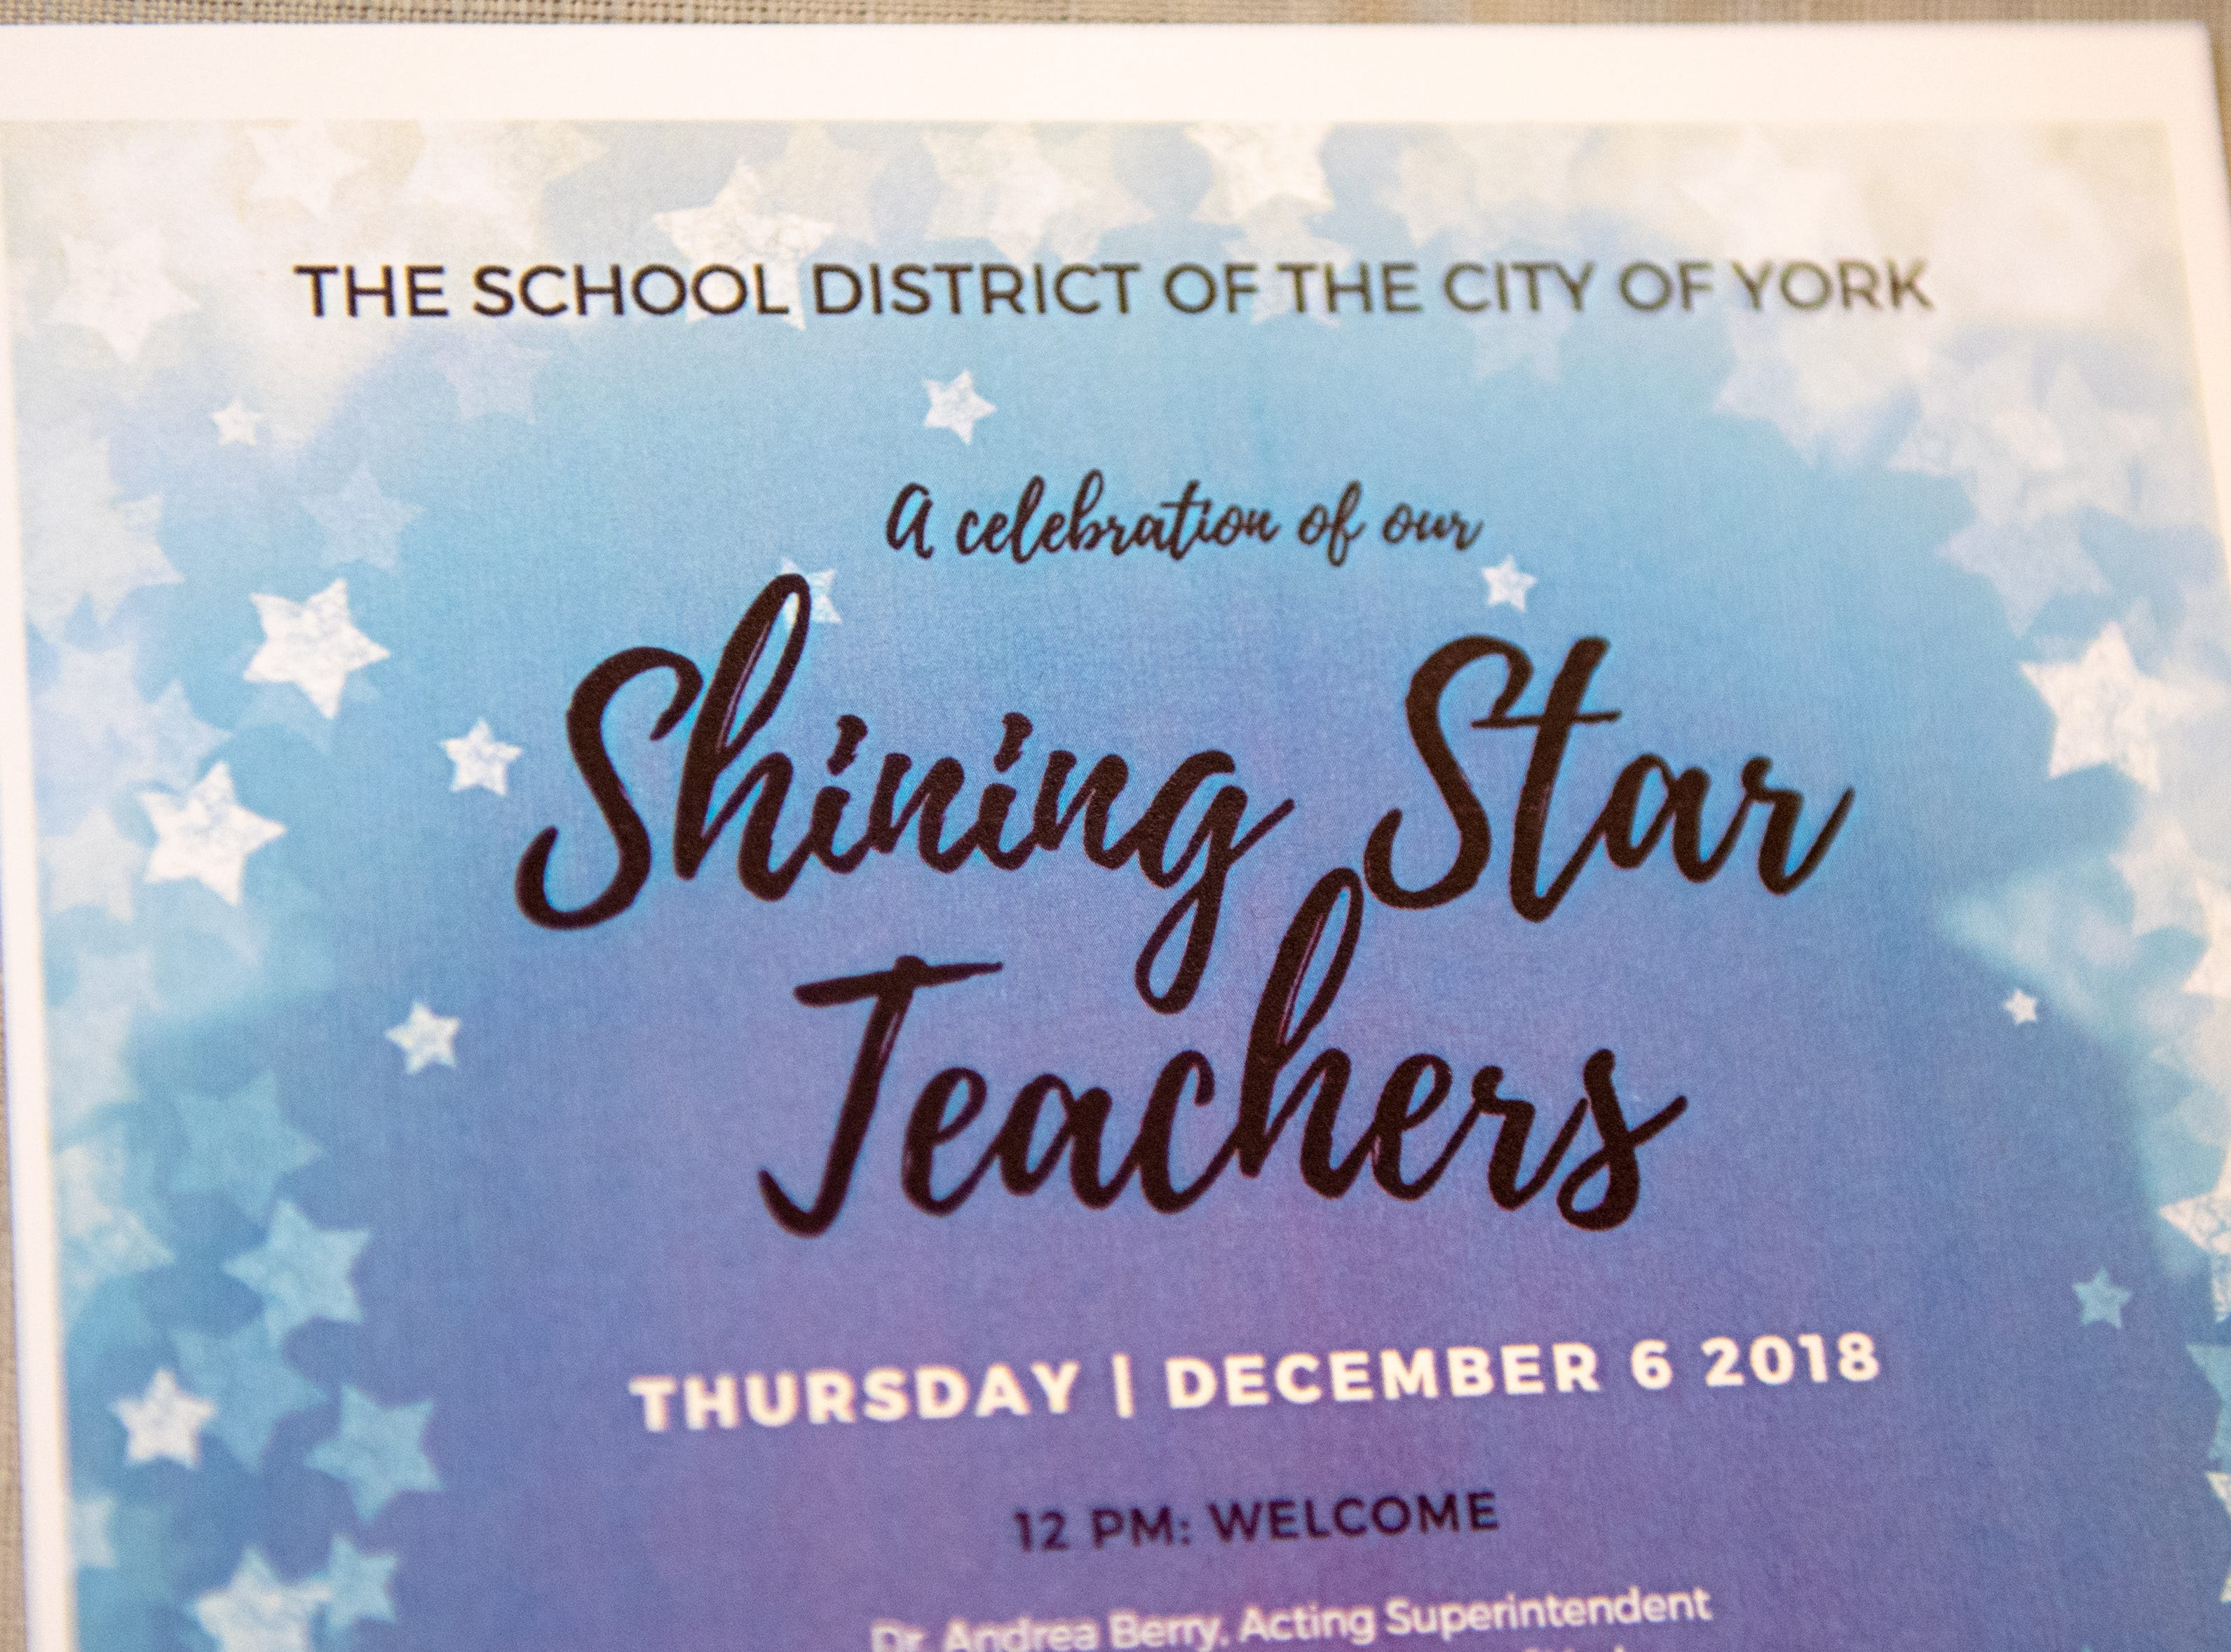 A total of 35 teachers of varying subjects were honored at the luncheon, December 6, 2018.